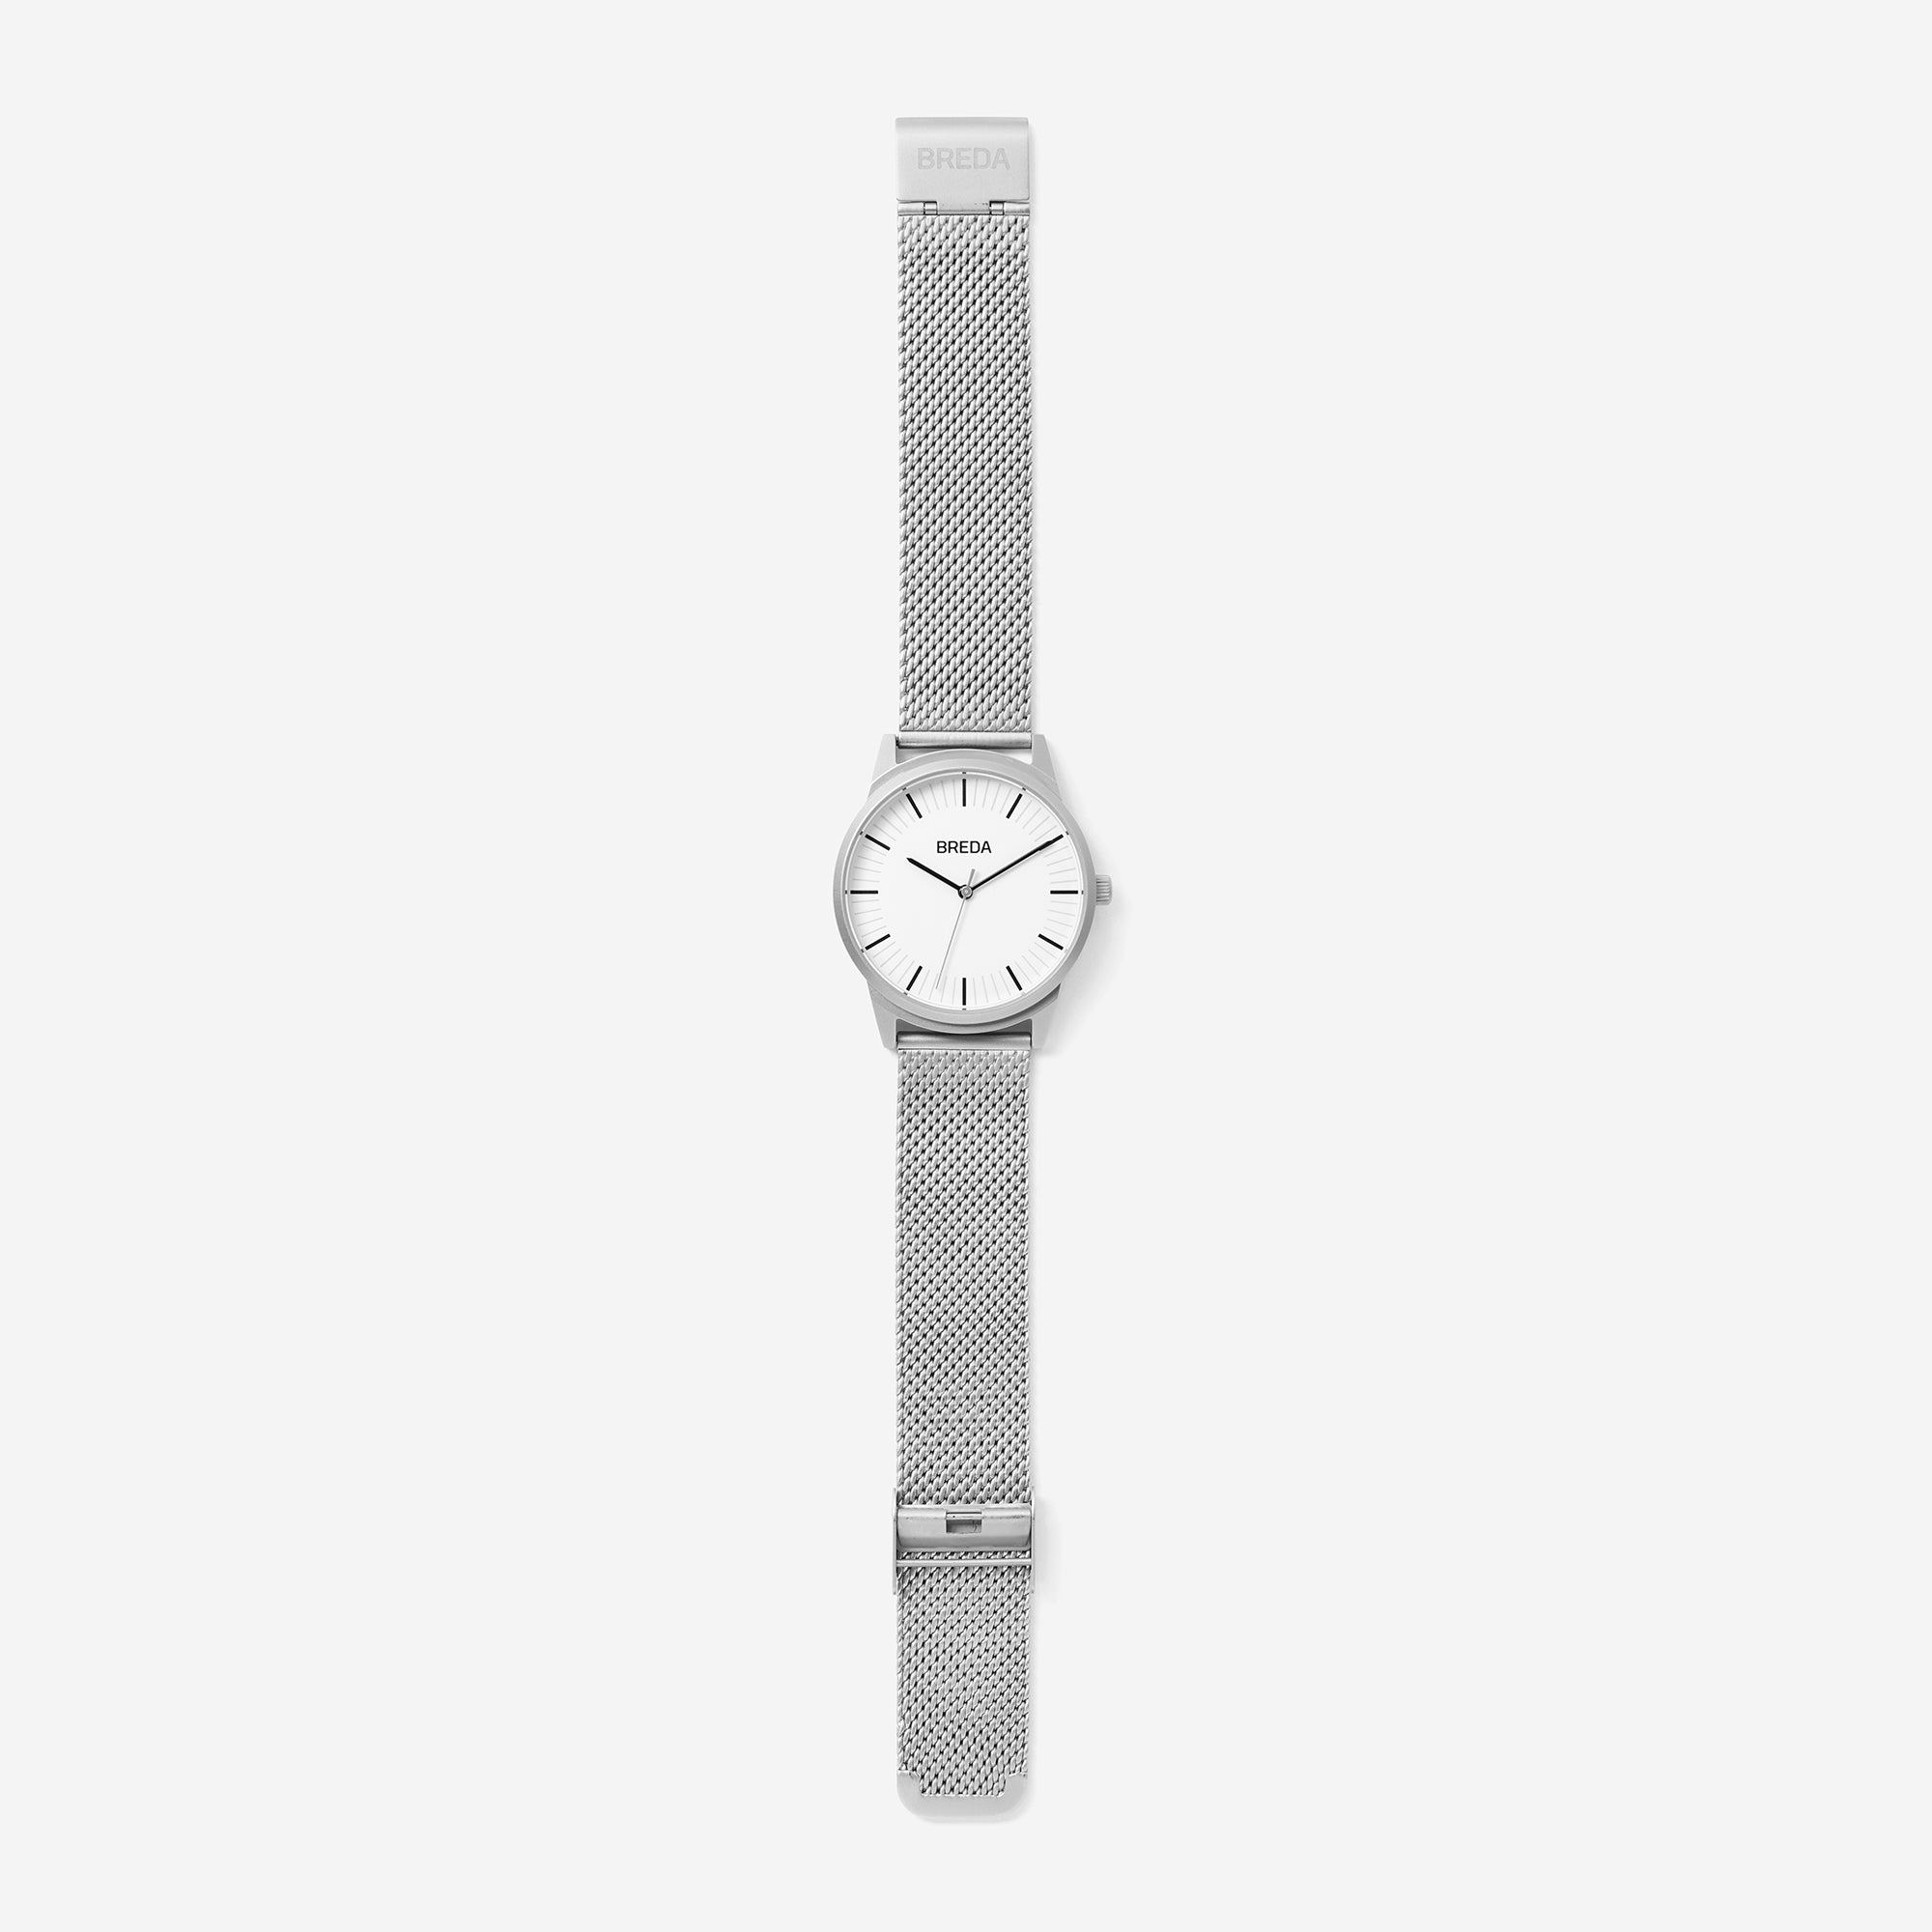 //cdn.shopify.com/s/files/1/0879/6650/products/breda-bresson-5020j-silver-mesh-watch-long_8dbb9a5b-b7d6-4692-8a8a-2c7ceda14232_1024x1024.jpg?v=1542823673